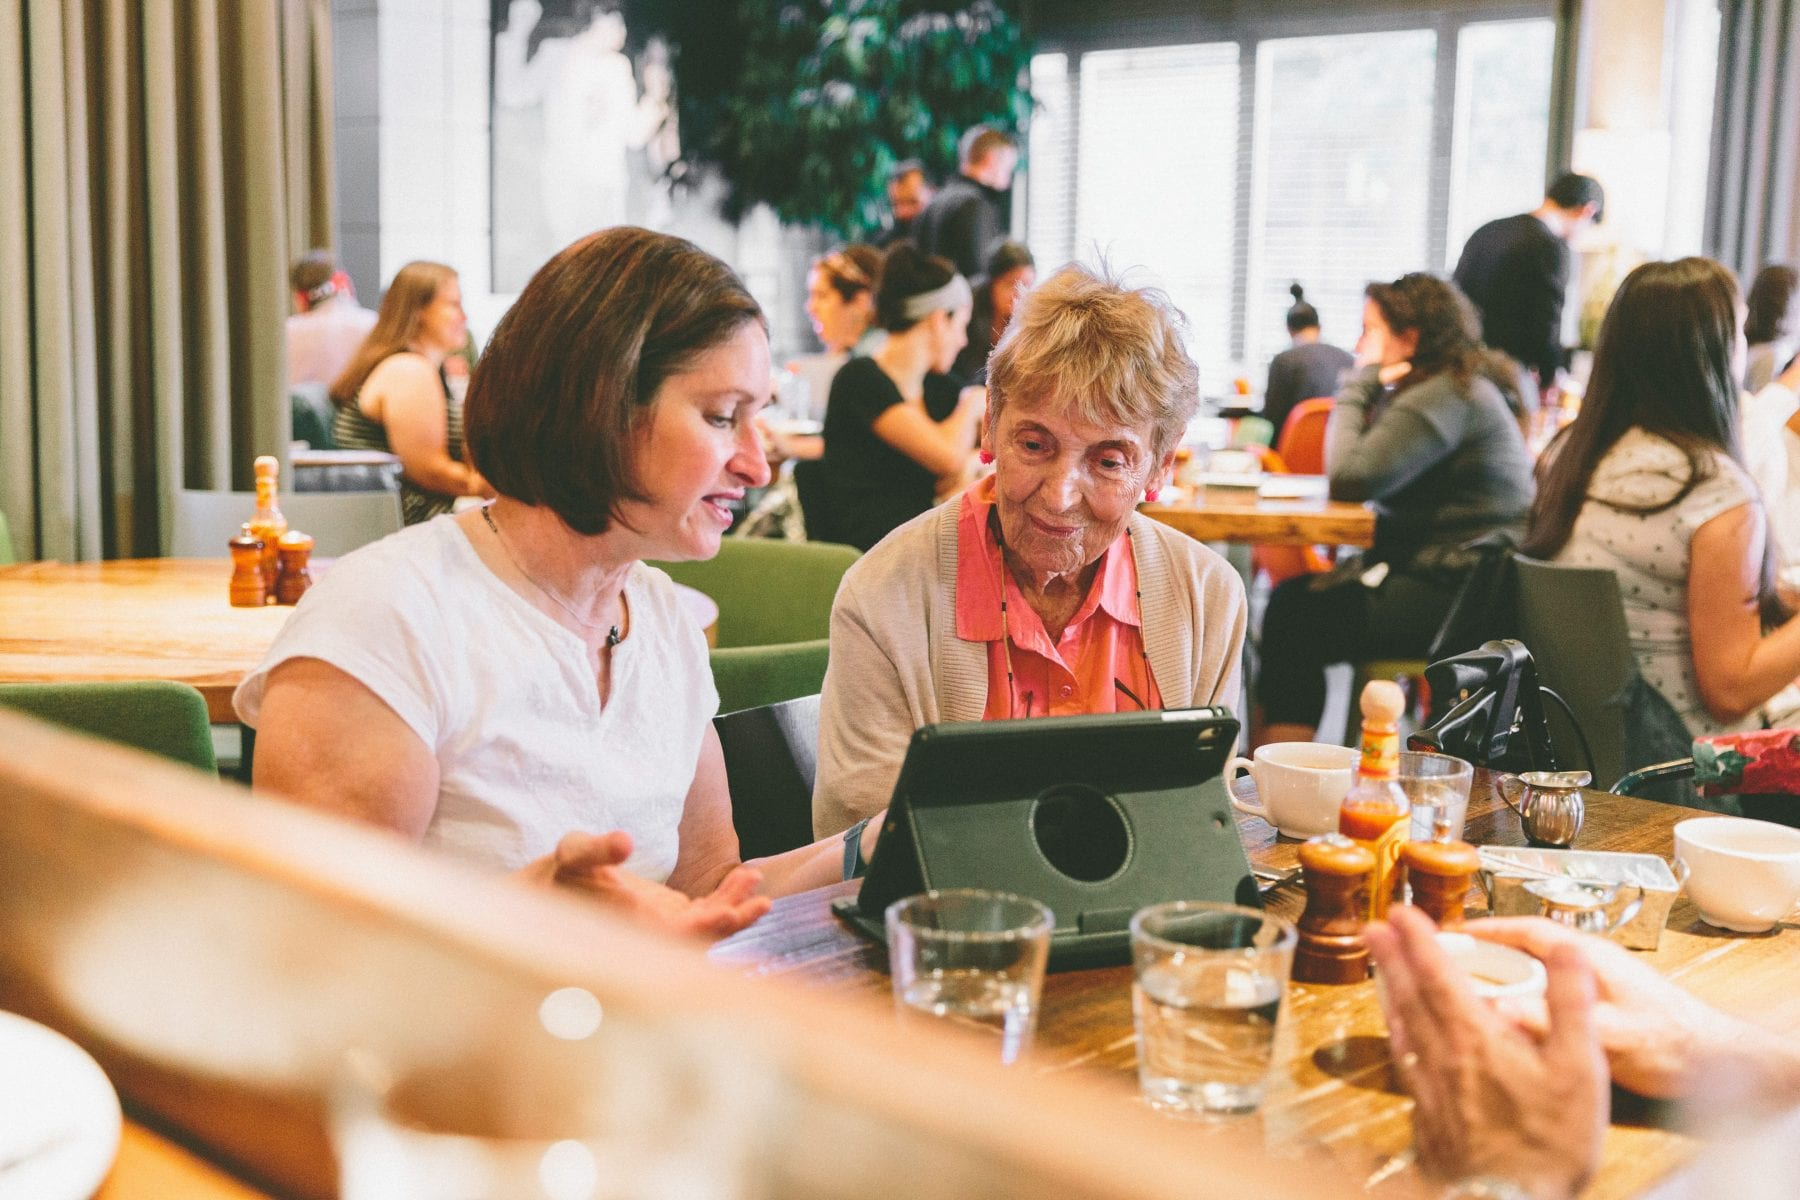 Photo: daughter helping her mom with a tablet in a coffee shop